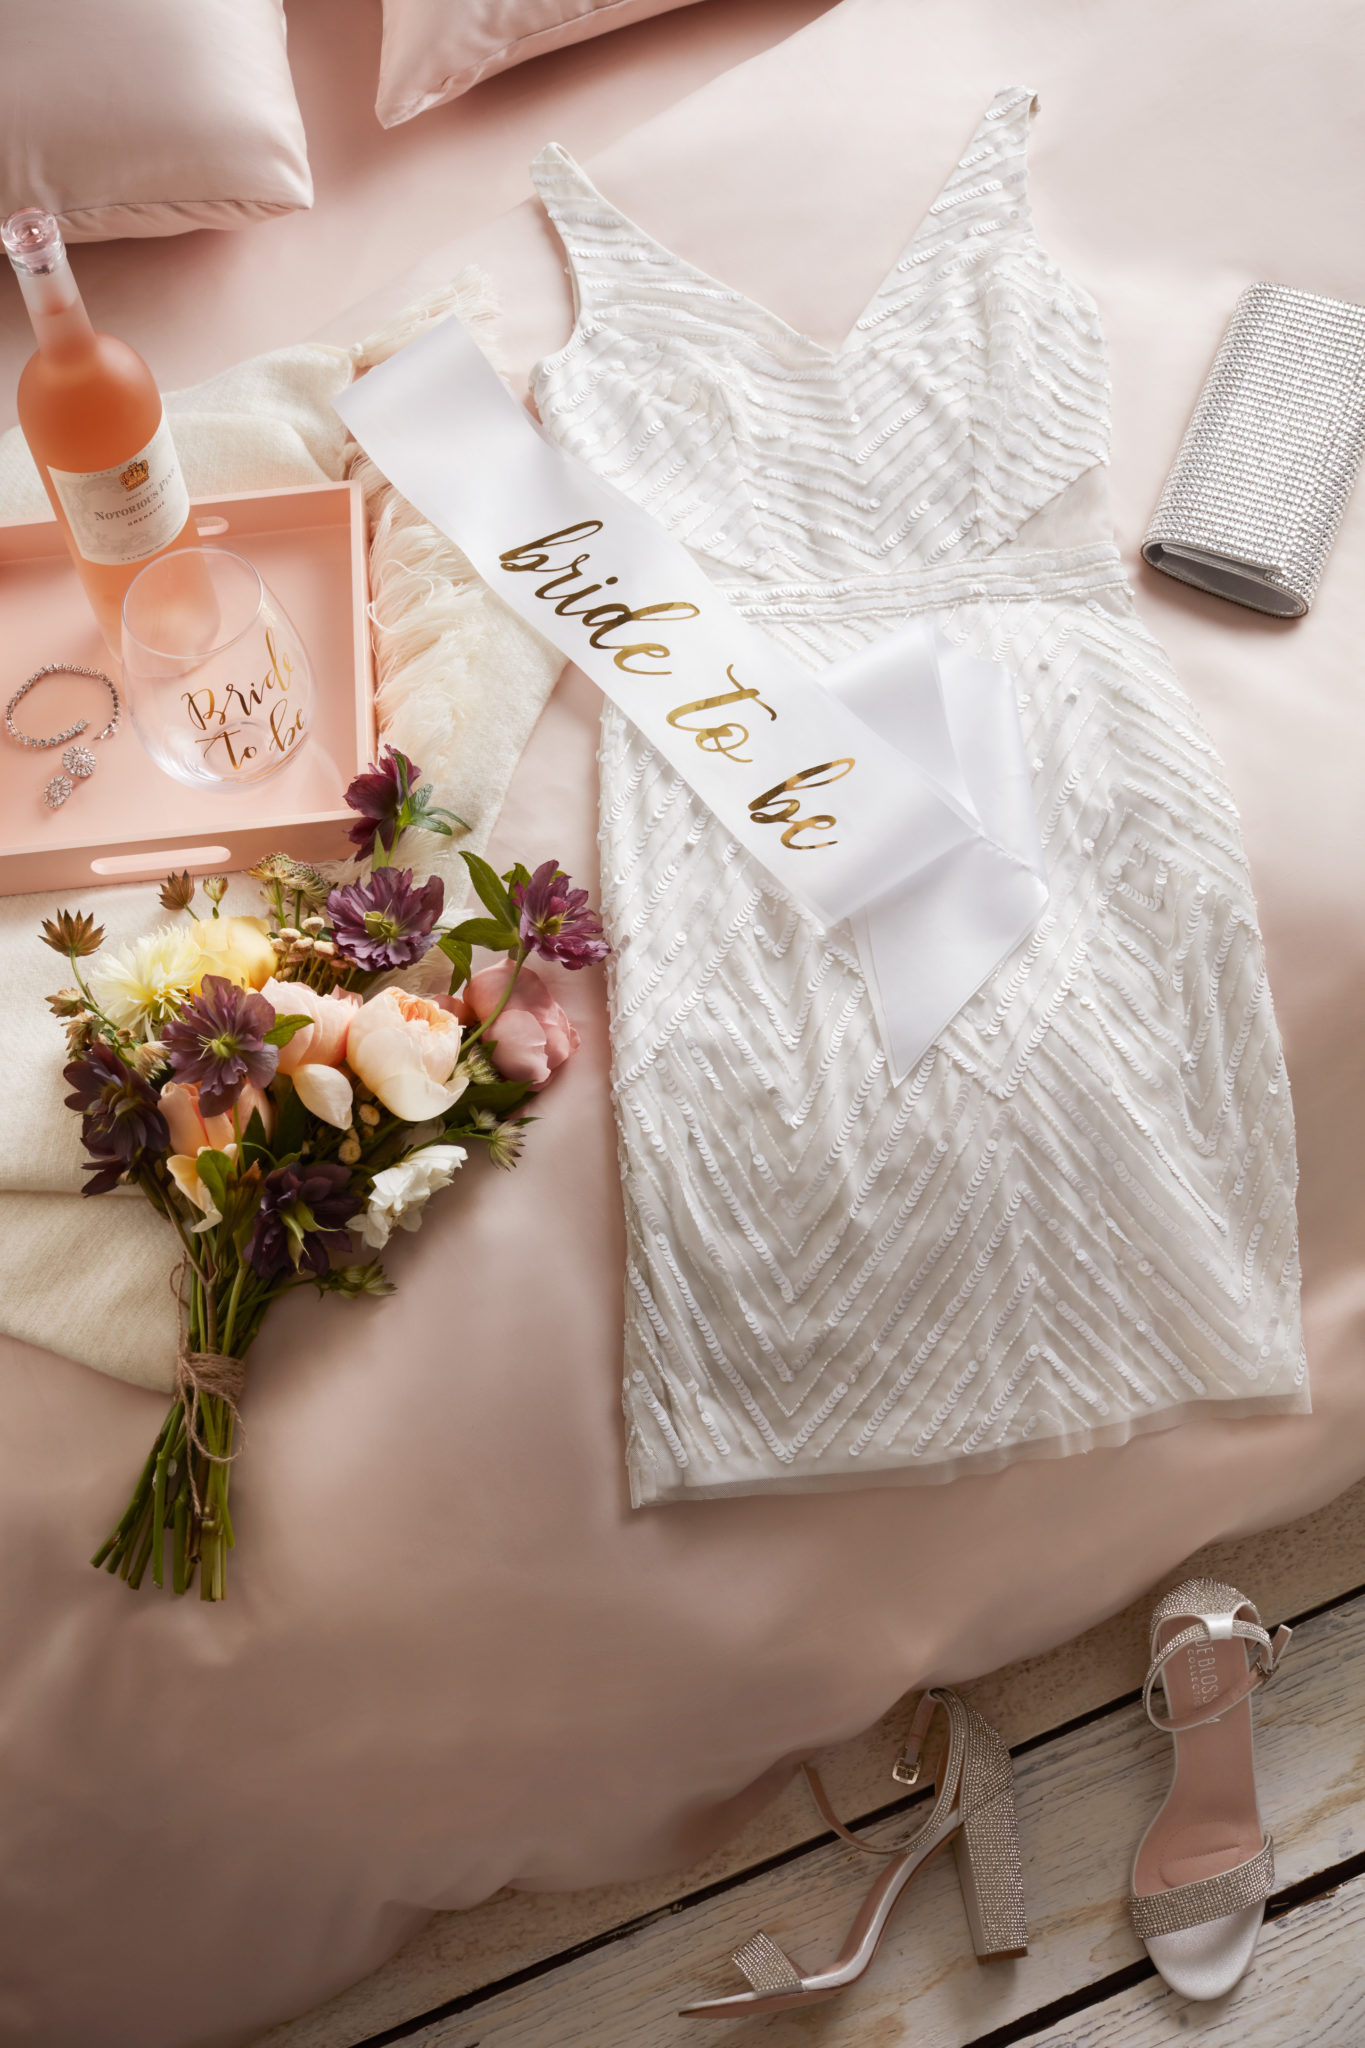 White dress laying on bed with flowers and tray of wine